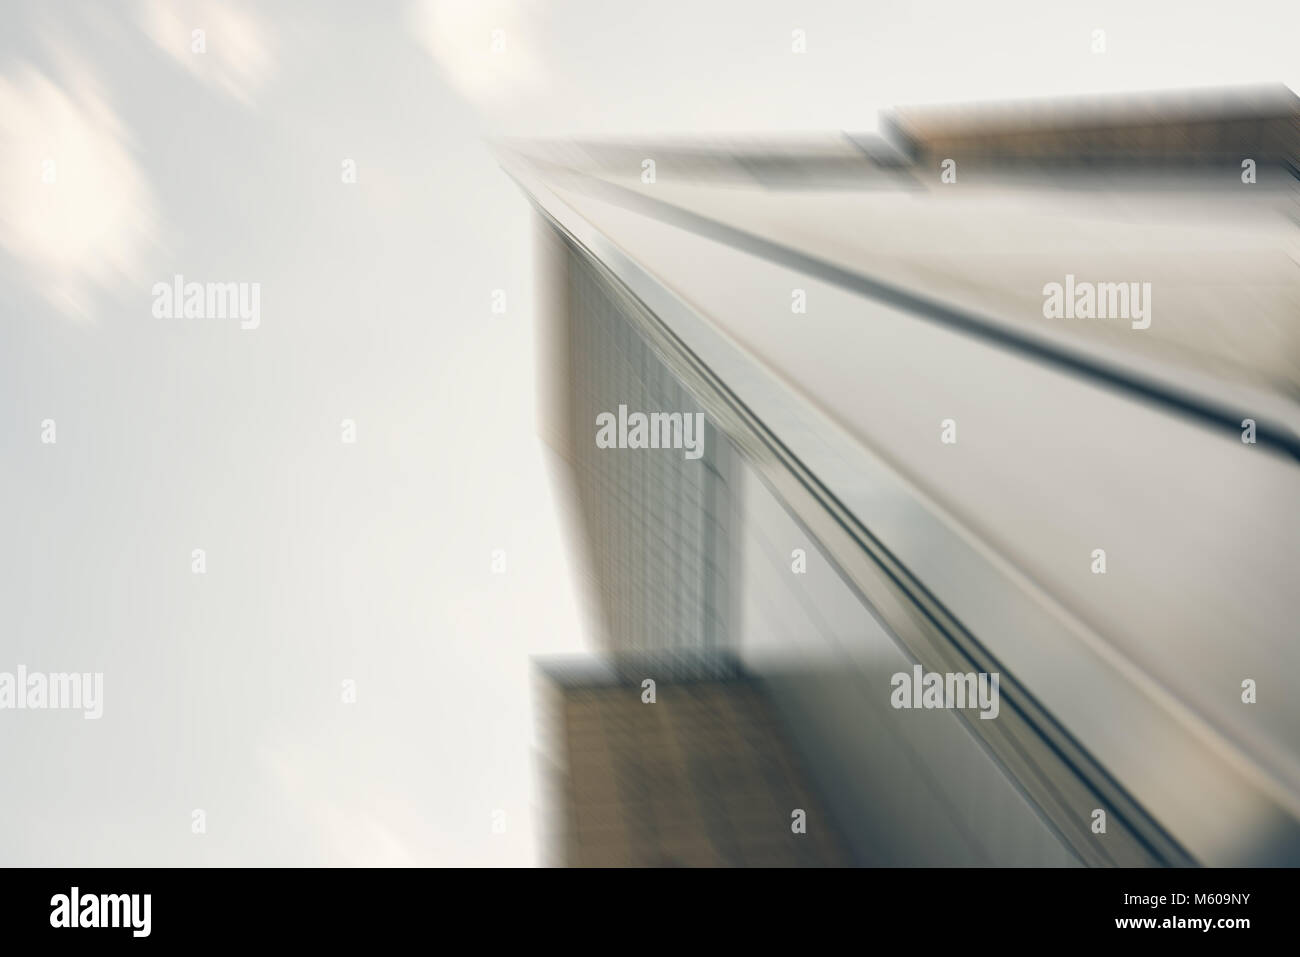 Blurred image of a modern skyscraper rising up into the sky - Stock Image